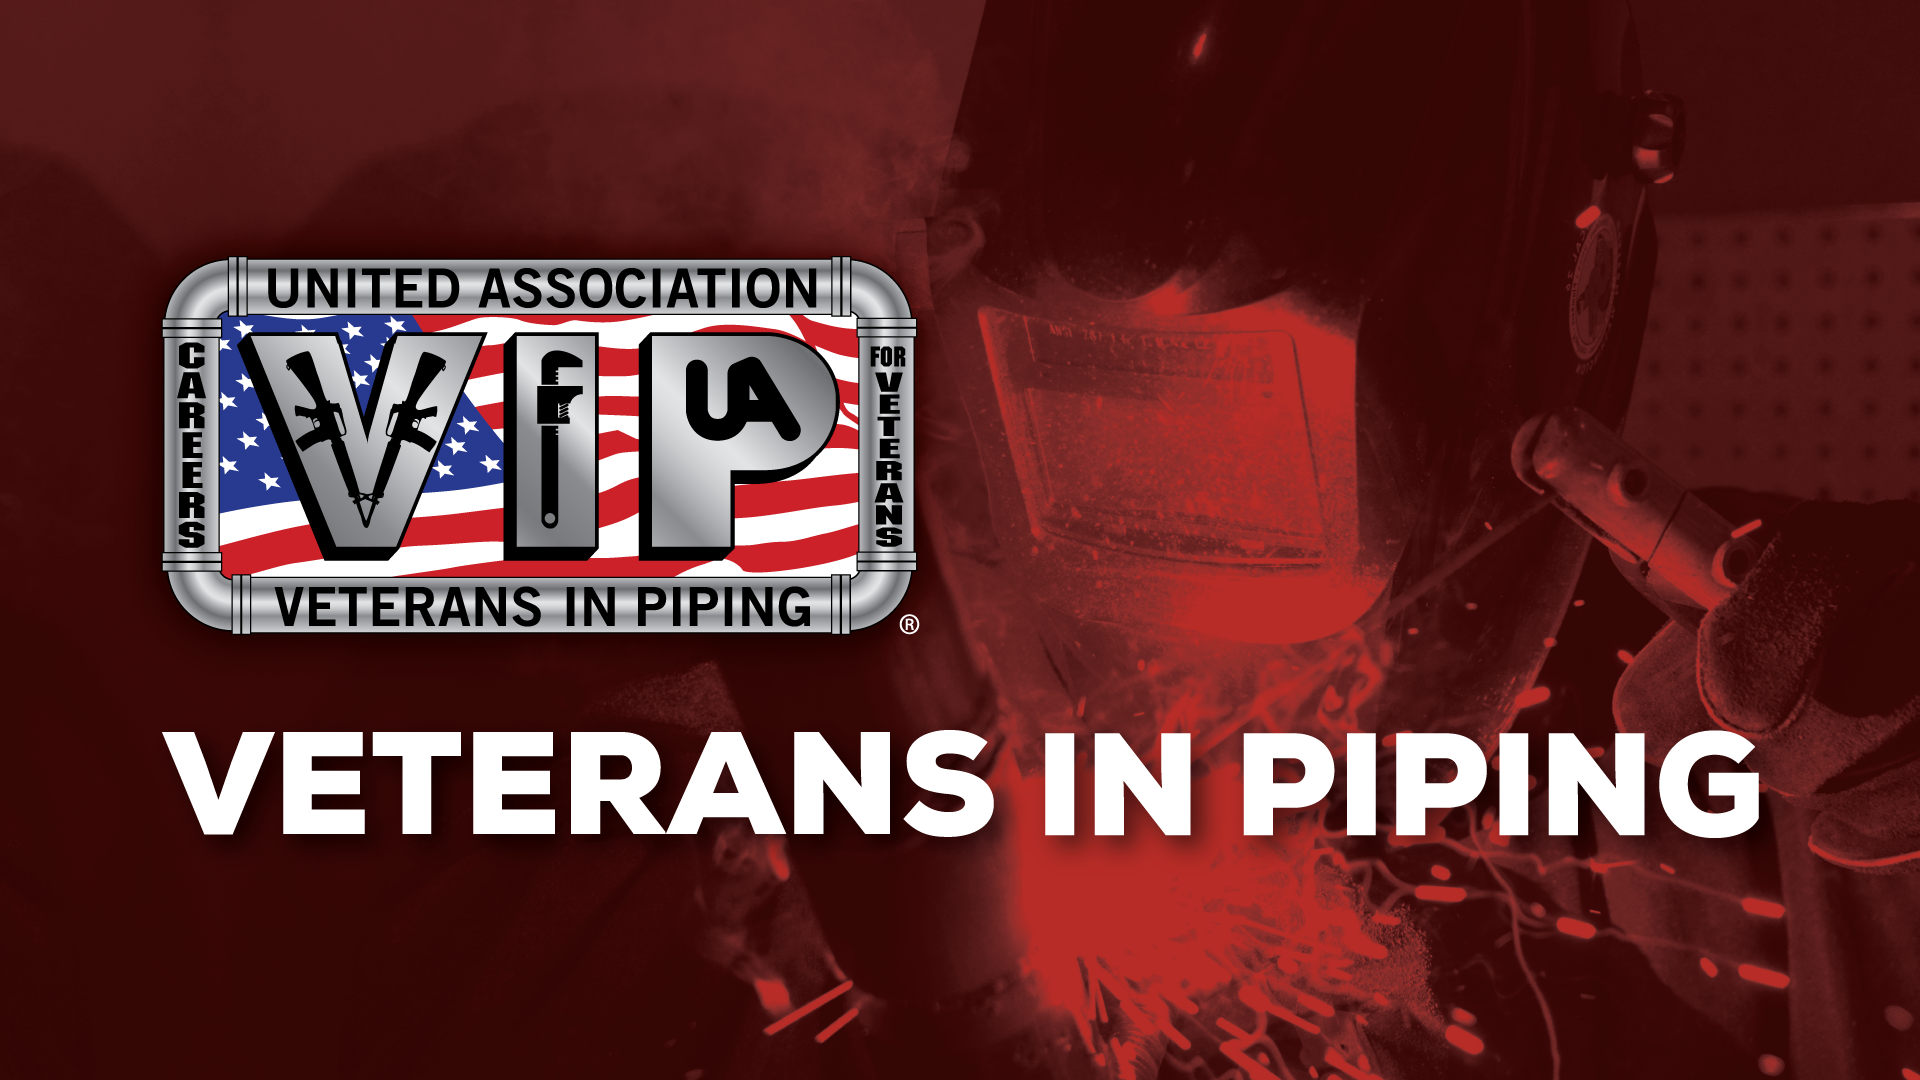 United Association Veterans in Piping Program - Joint Base Lewis-McChord